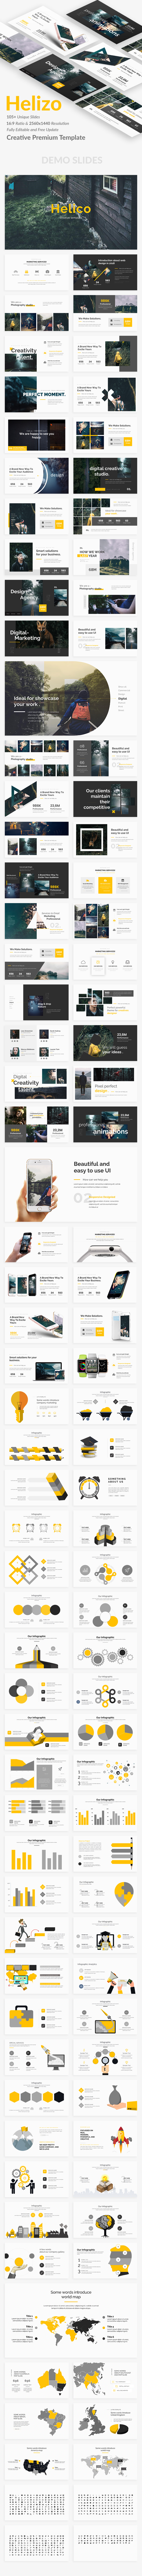 Helizo Premium Creative Design Keynote Template - Creative Keynote Templates